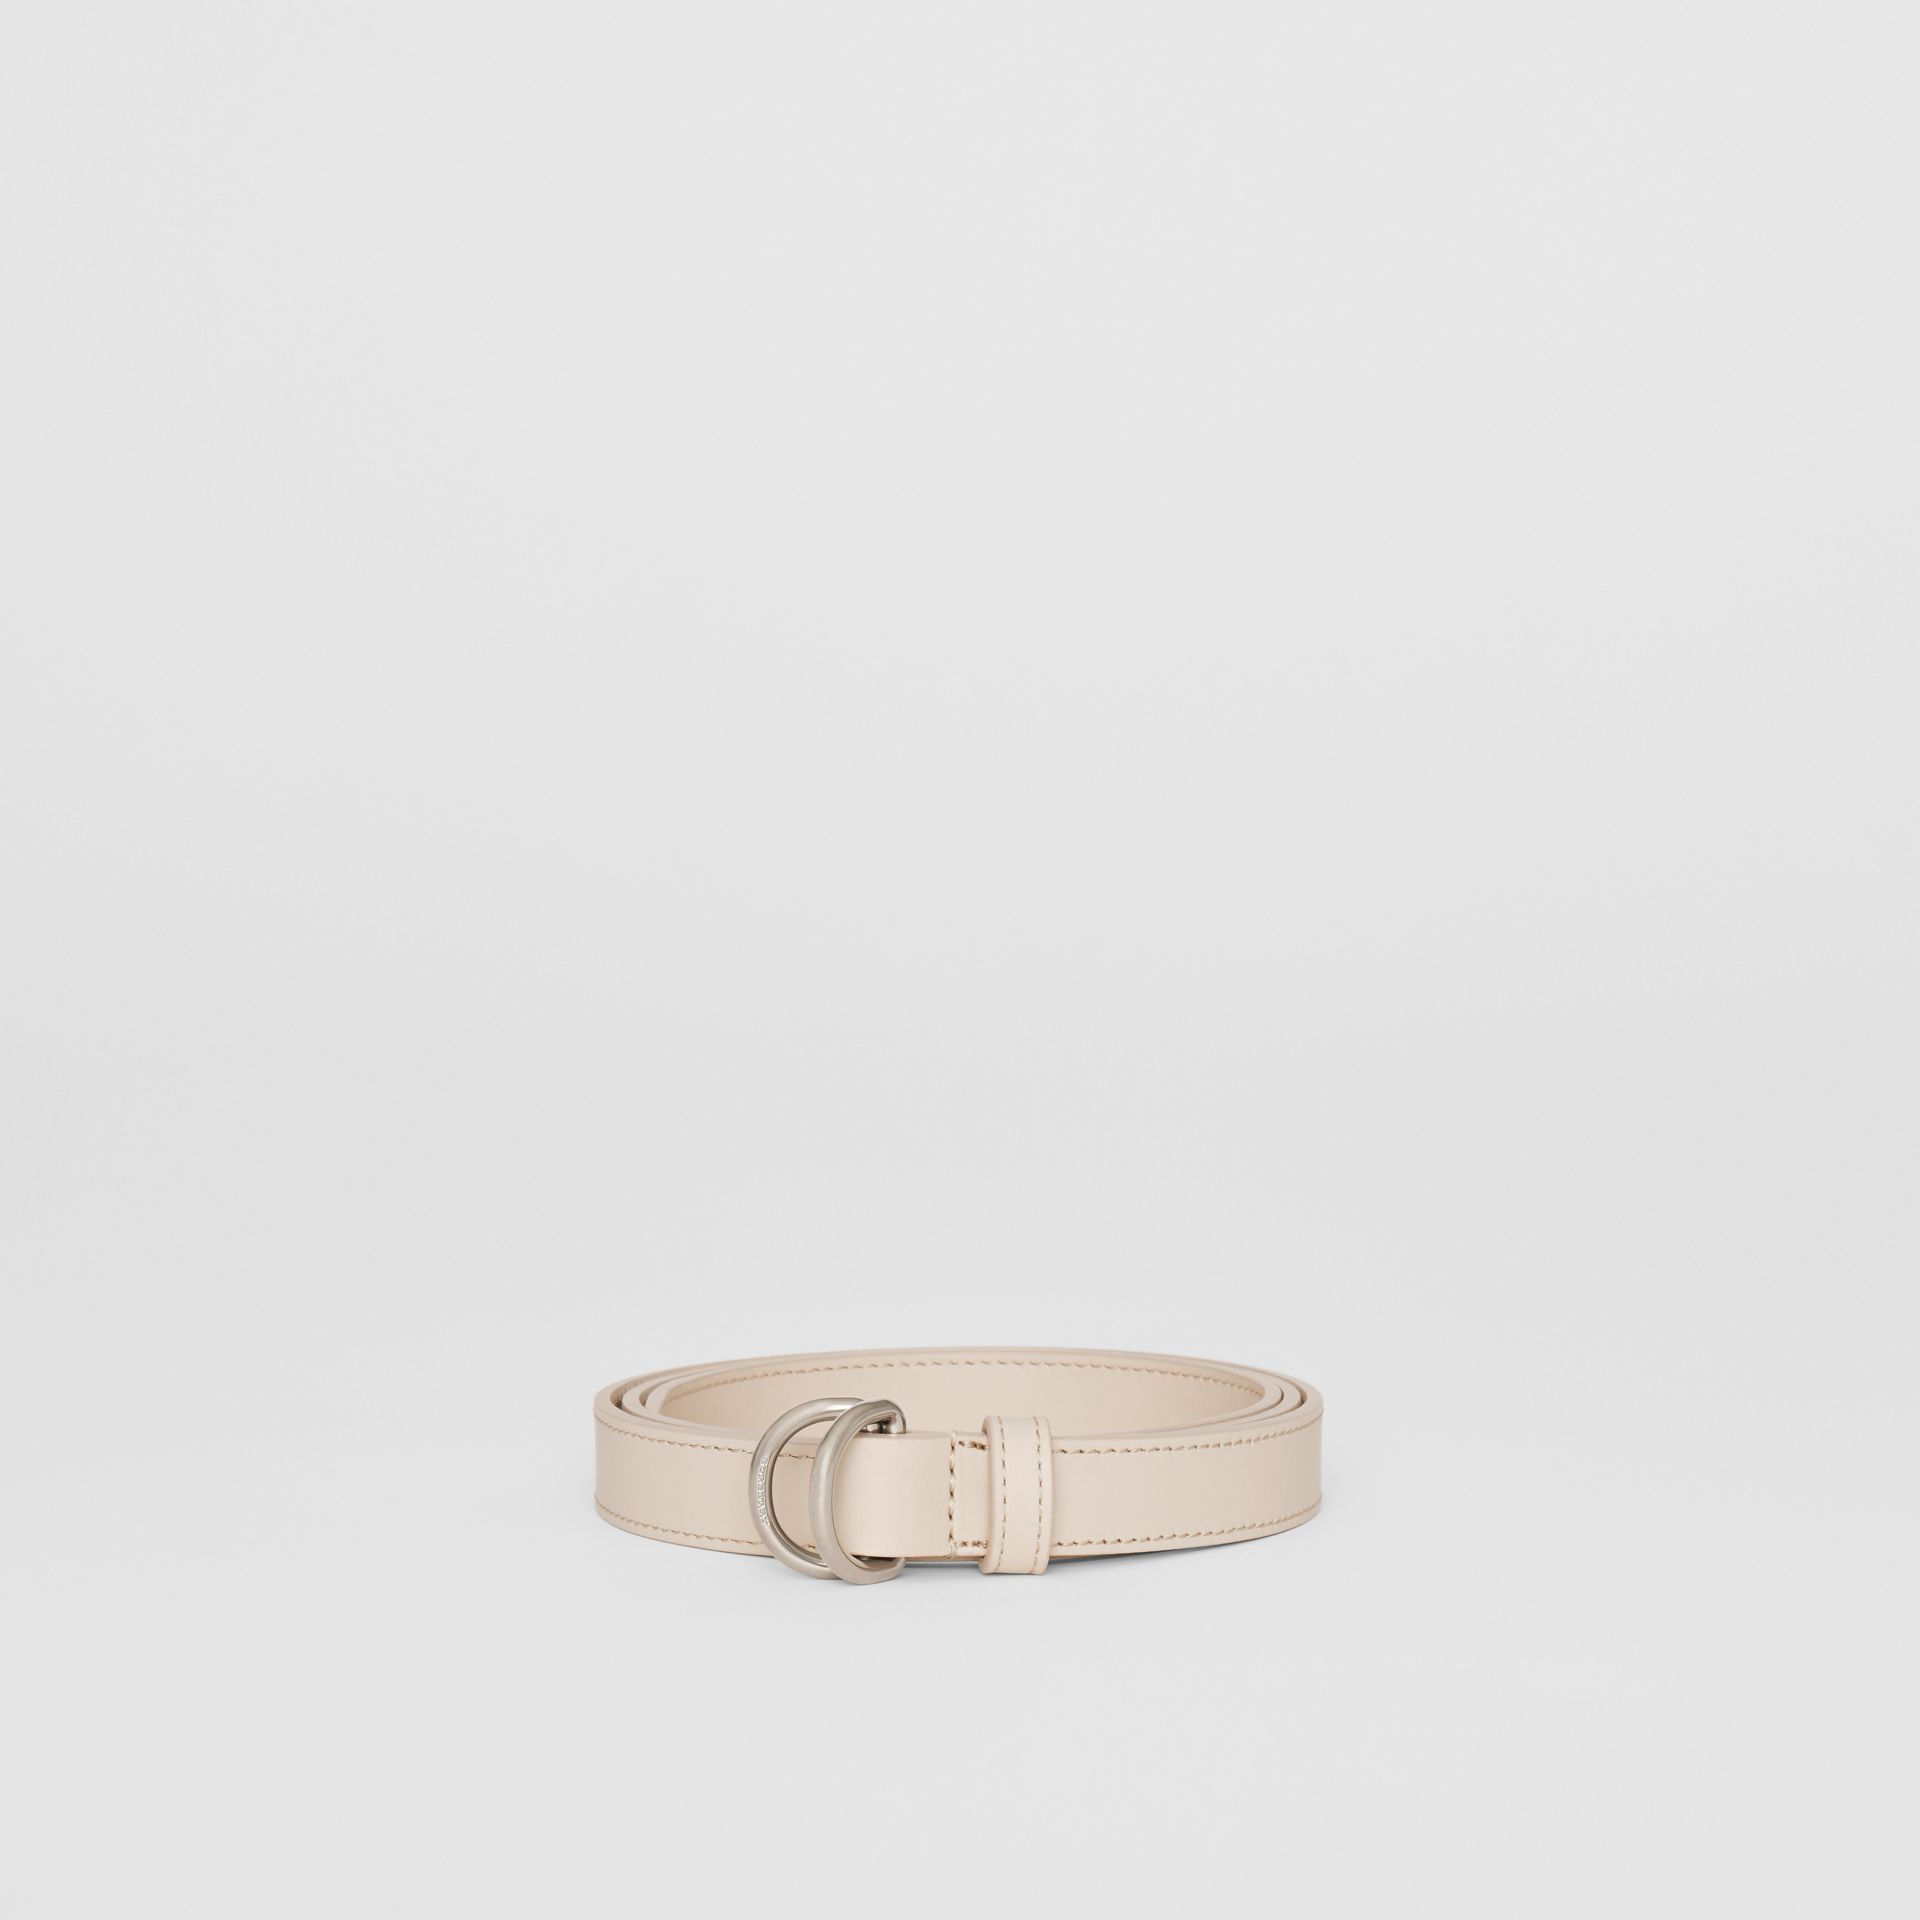 Slim Leather Double D-ring Belt in Limestone - Women | Burberry United States - gallery image 3